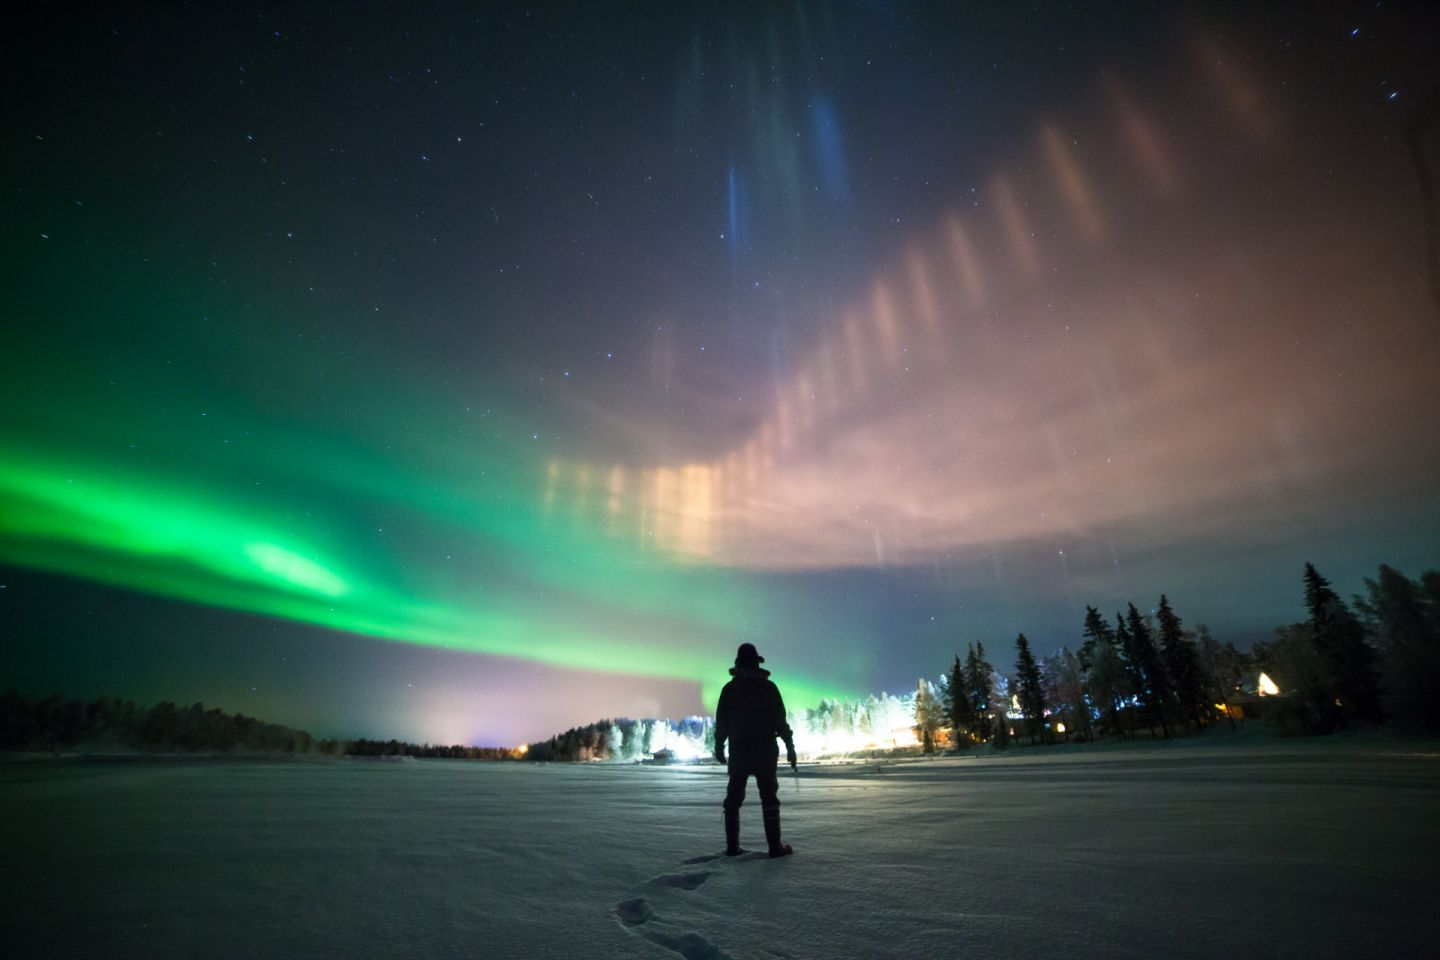 Northern Lights in the sky over Finnish Lapland